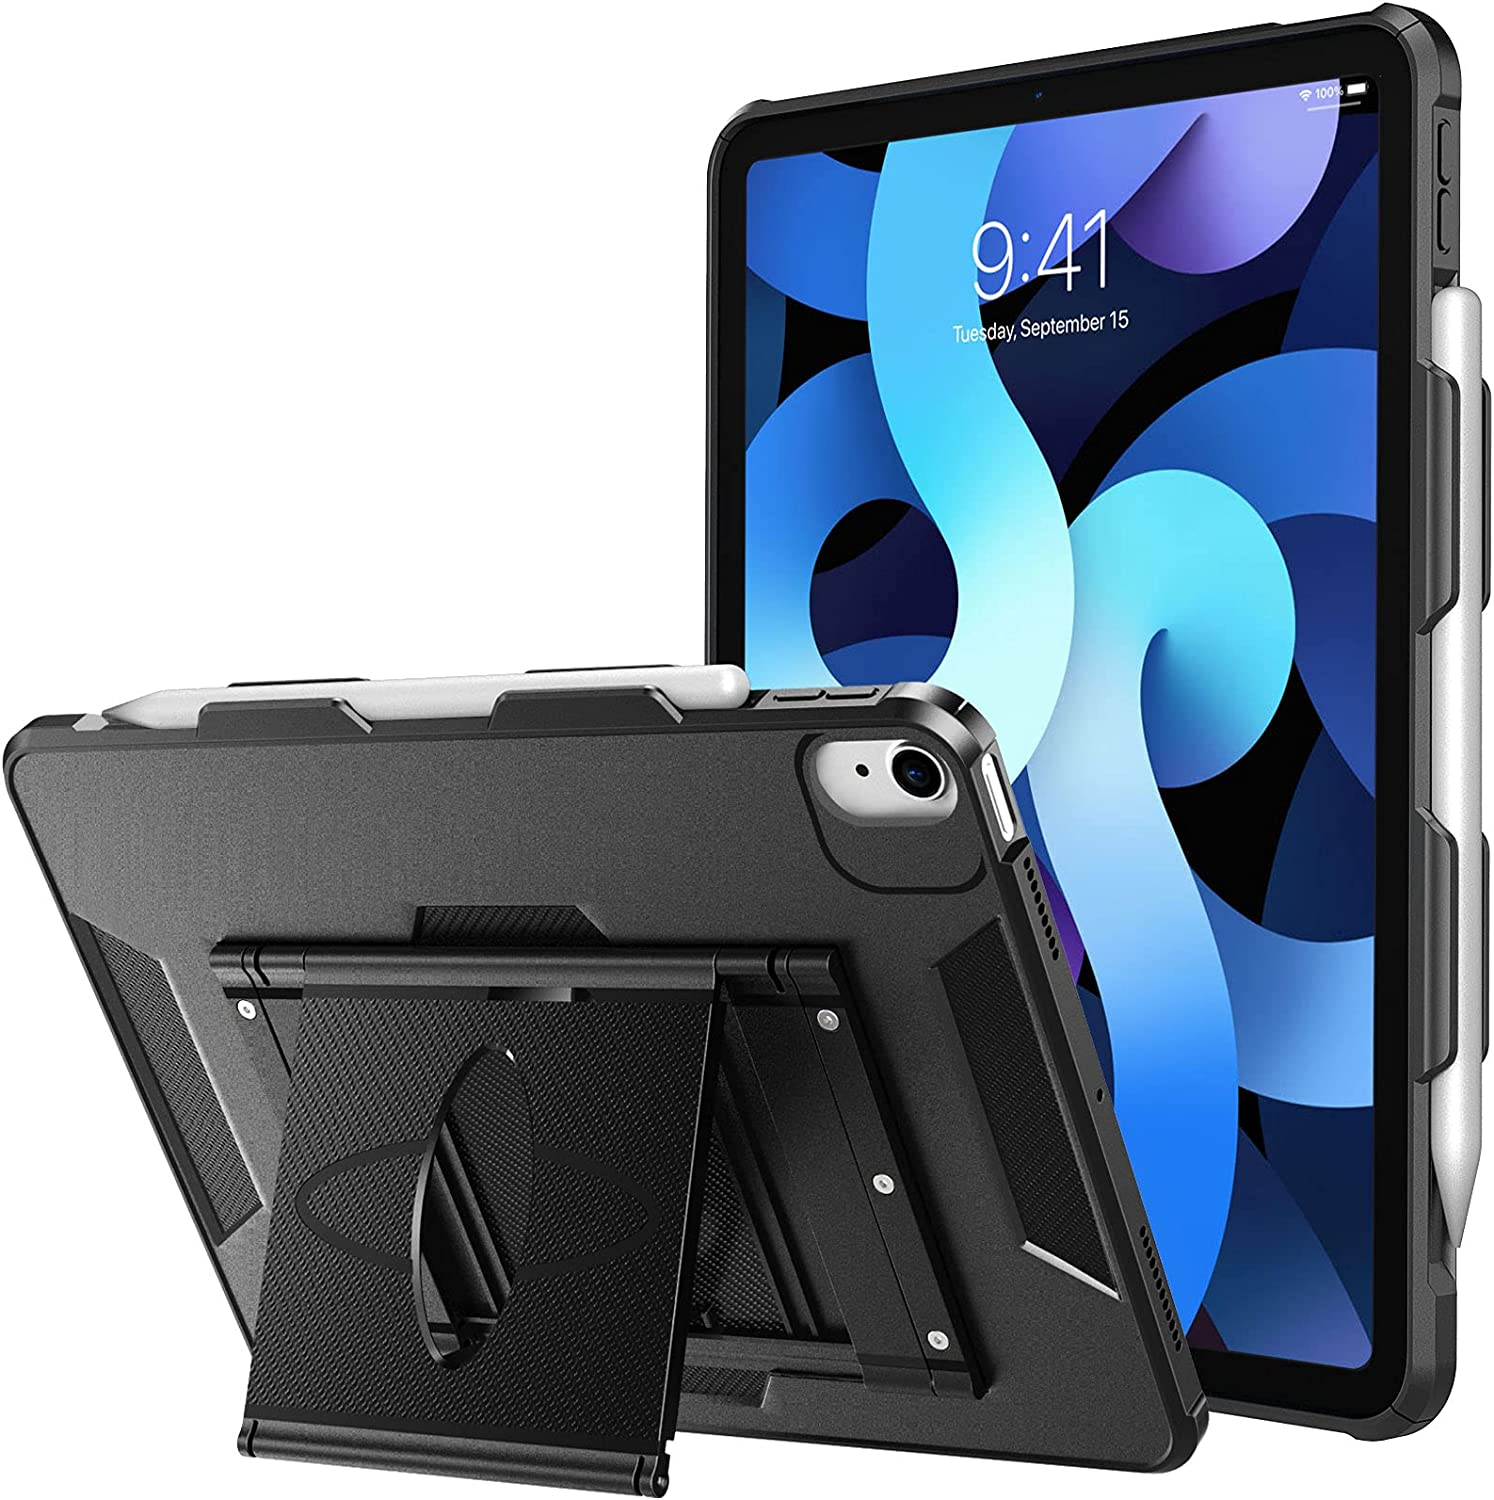 TiMOVO Case for New iPad Air 4th Generation, iPad Air 4 Case (10.9-inch, 2020), Multi-Angle Viewing Stand Swivel Case, Full-Body Shockproof Protective Cover with Pencil Holder Fit iPad 10.9